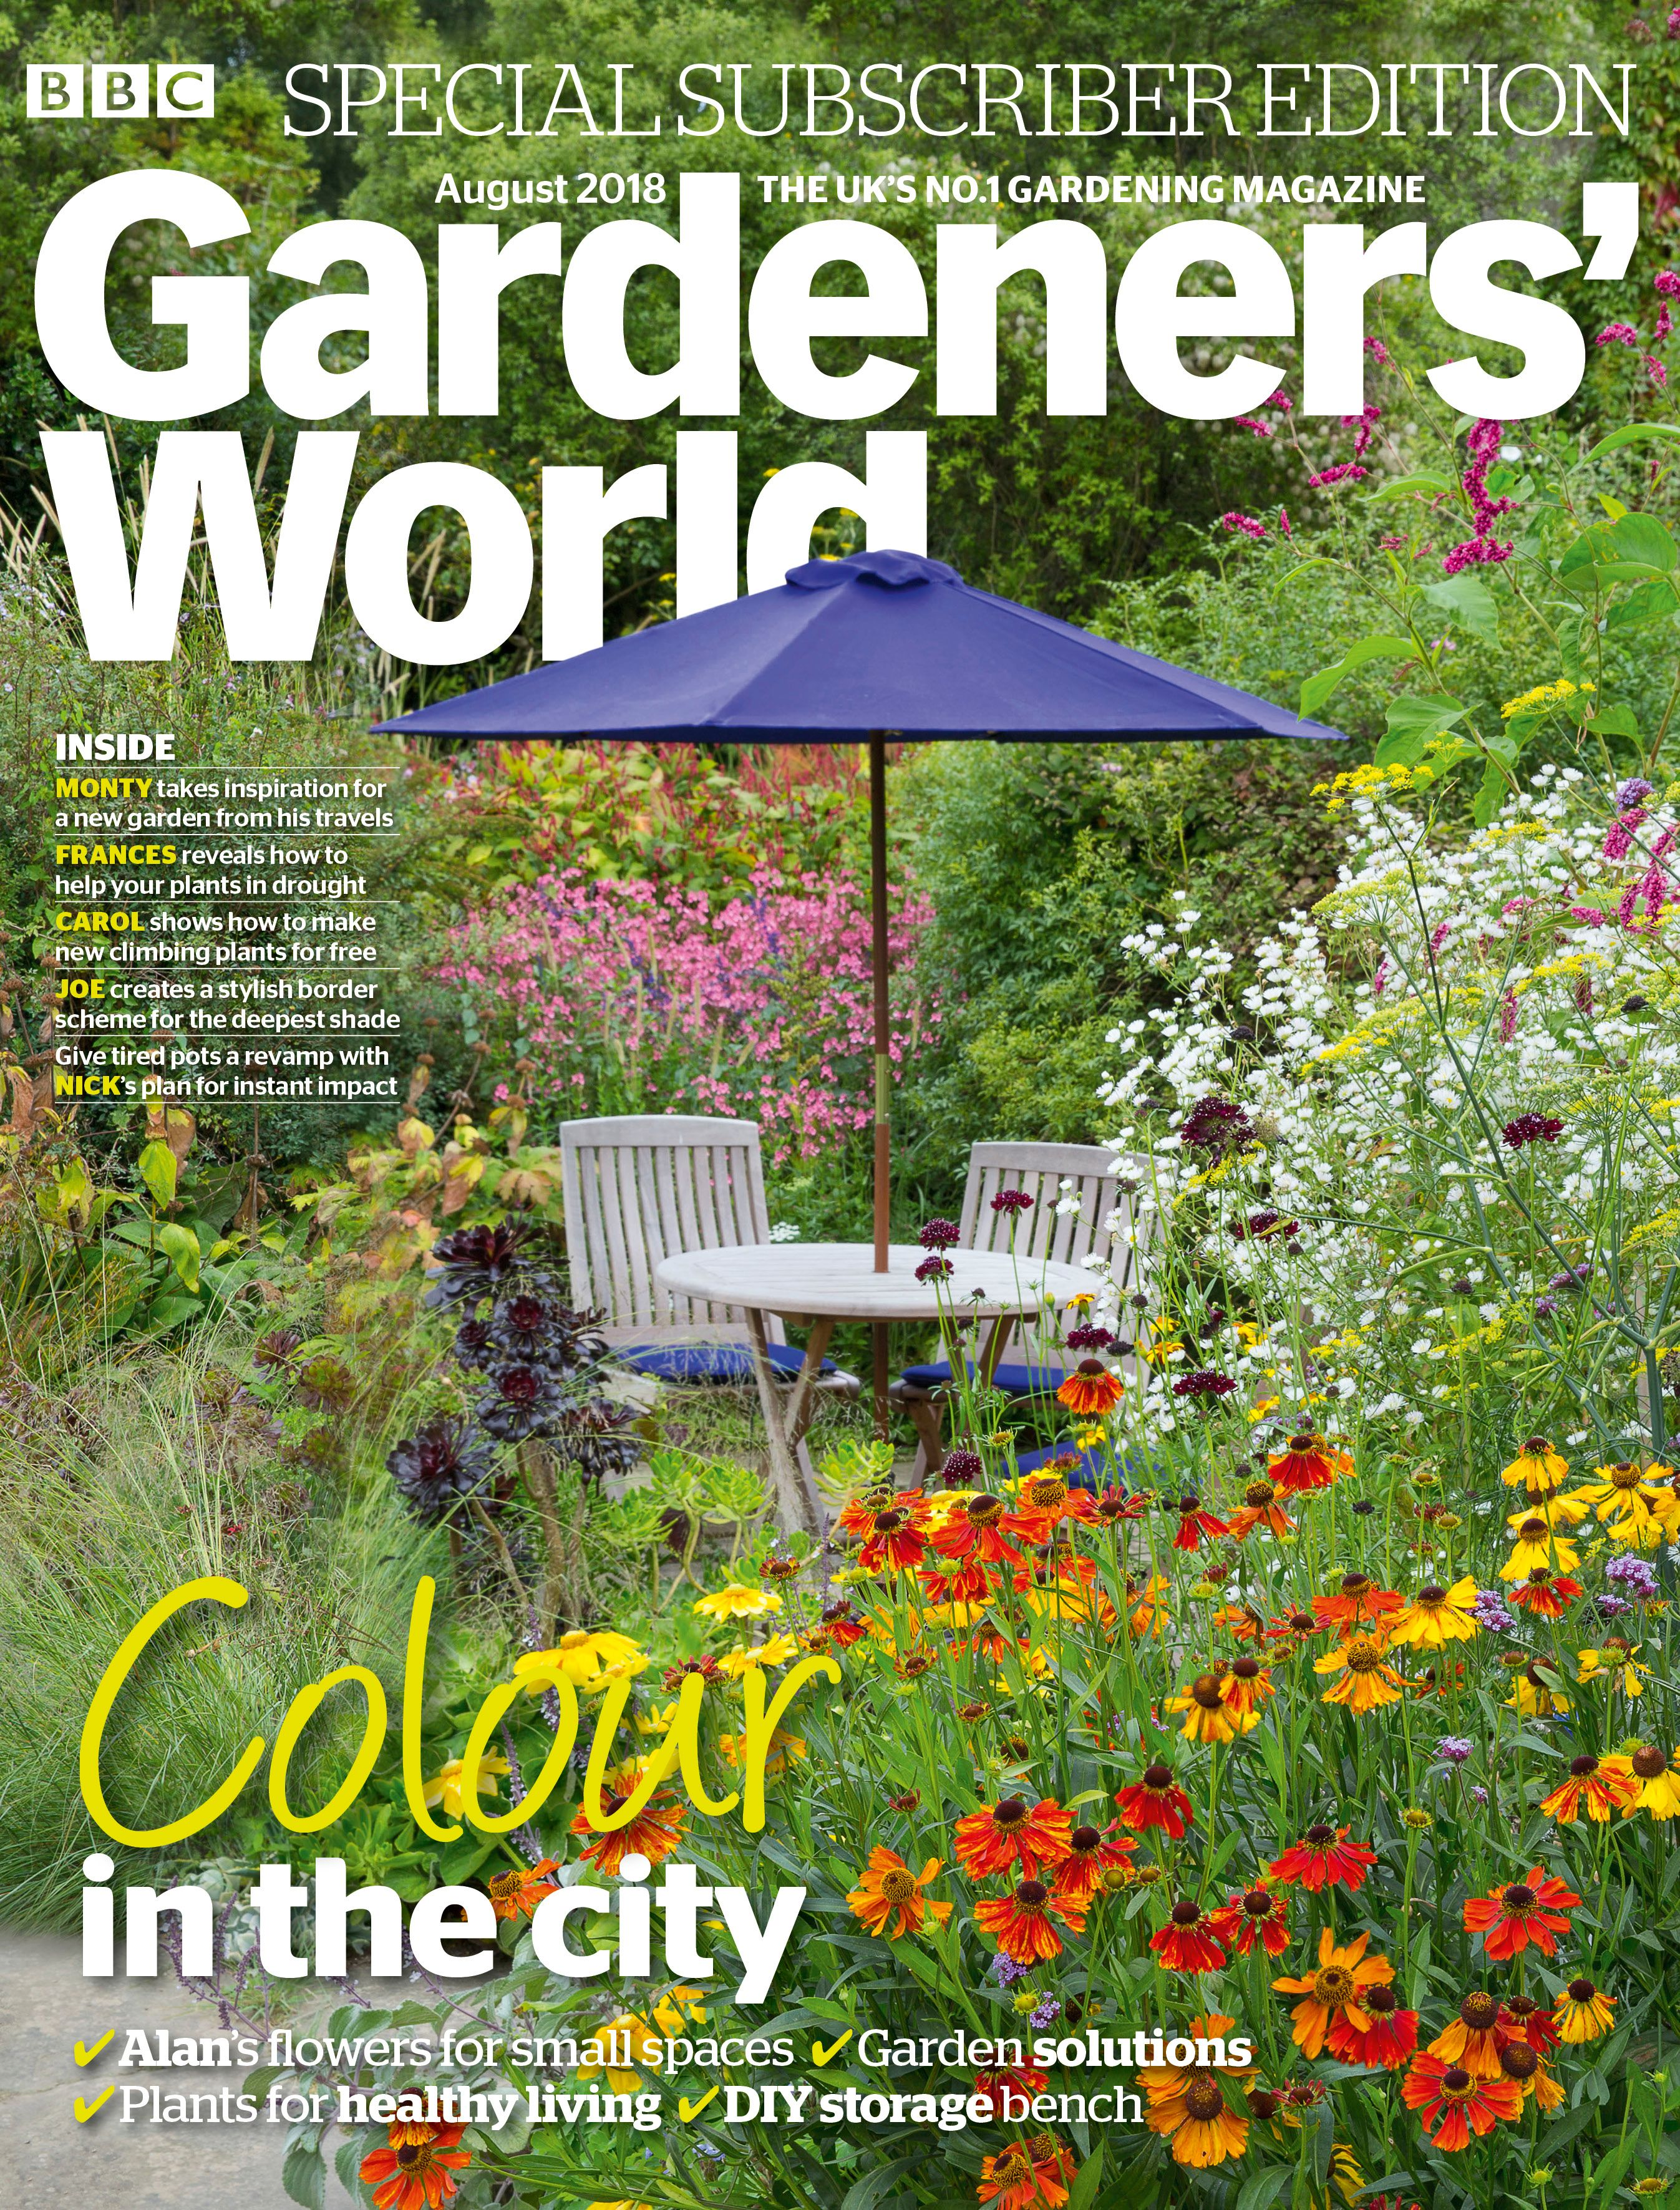 db335a80f3cea2a5389d90af851b3969 - Back Issues Of Gardeners World Magazine